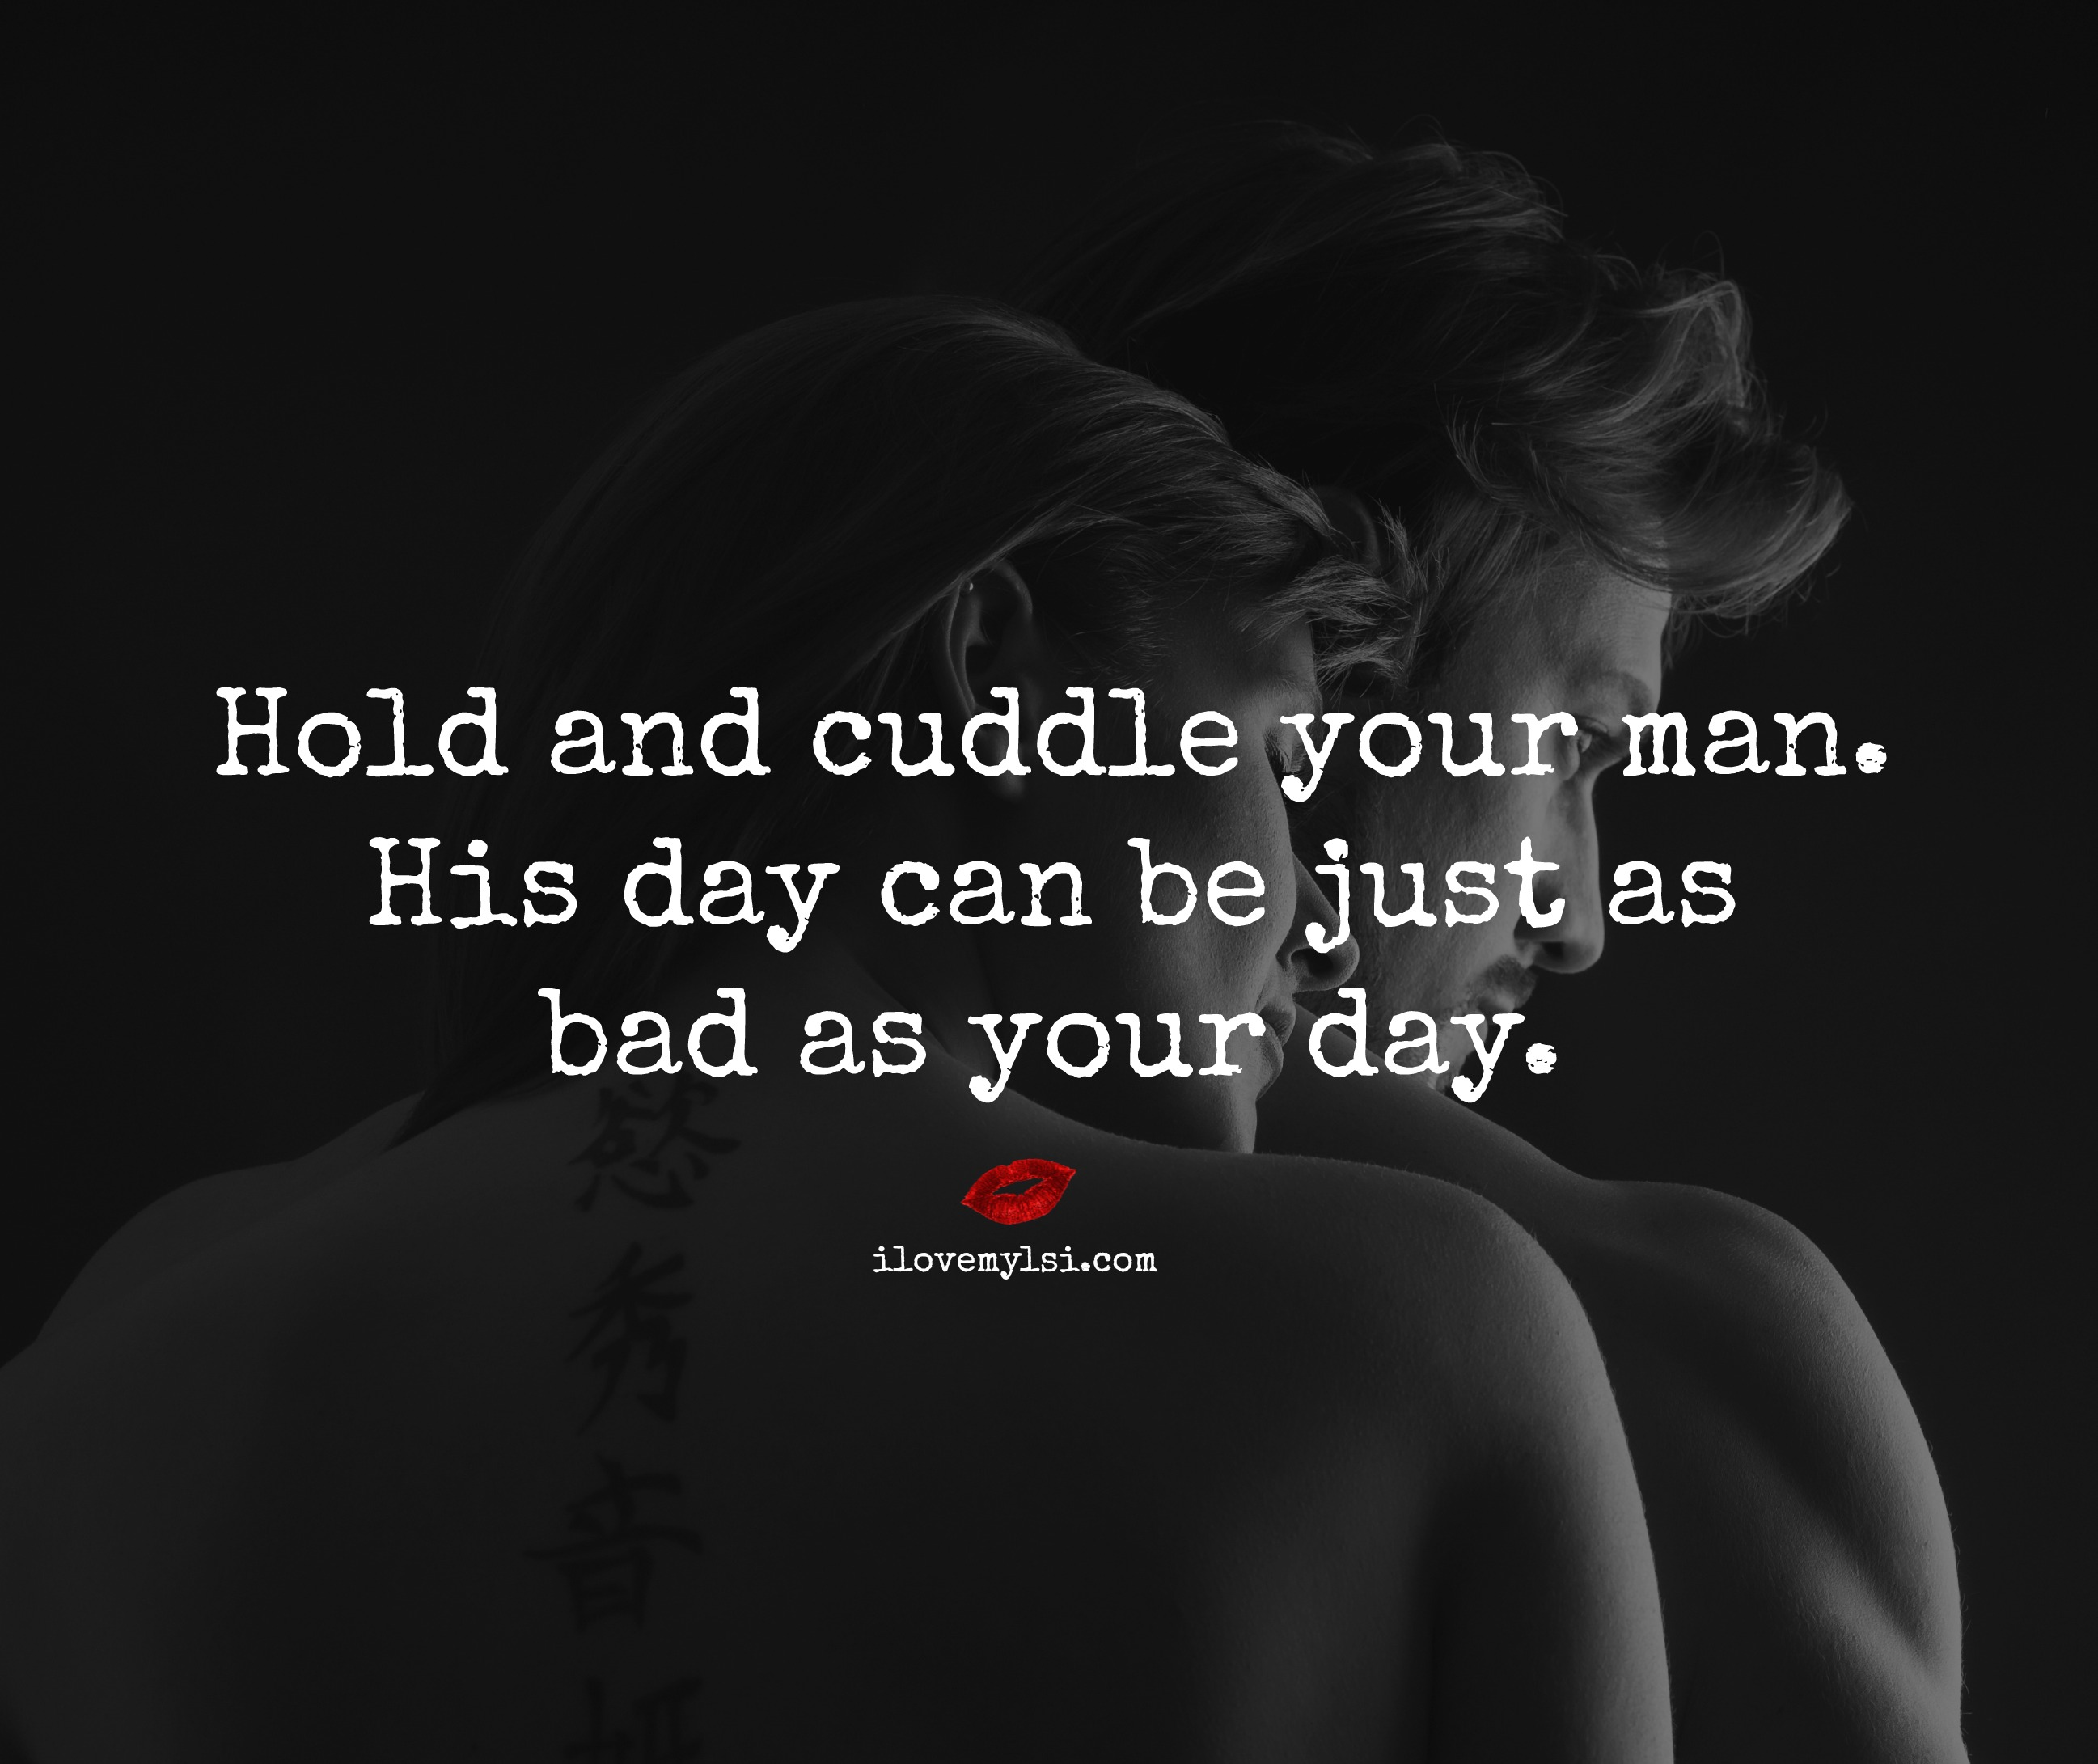 Cuddling Quotes And Sayings: Hold And Cuddle Your Man